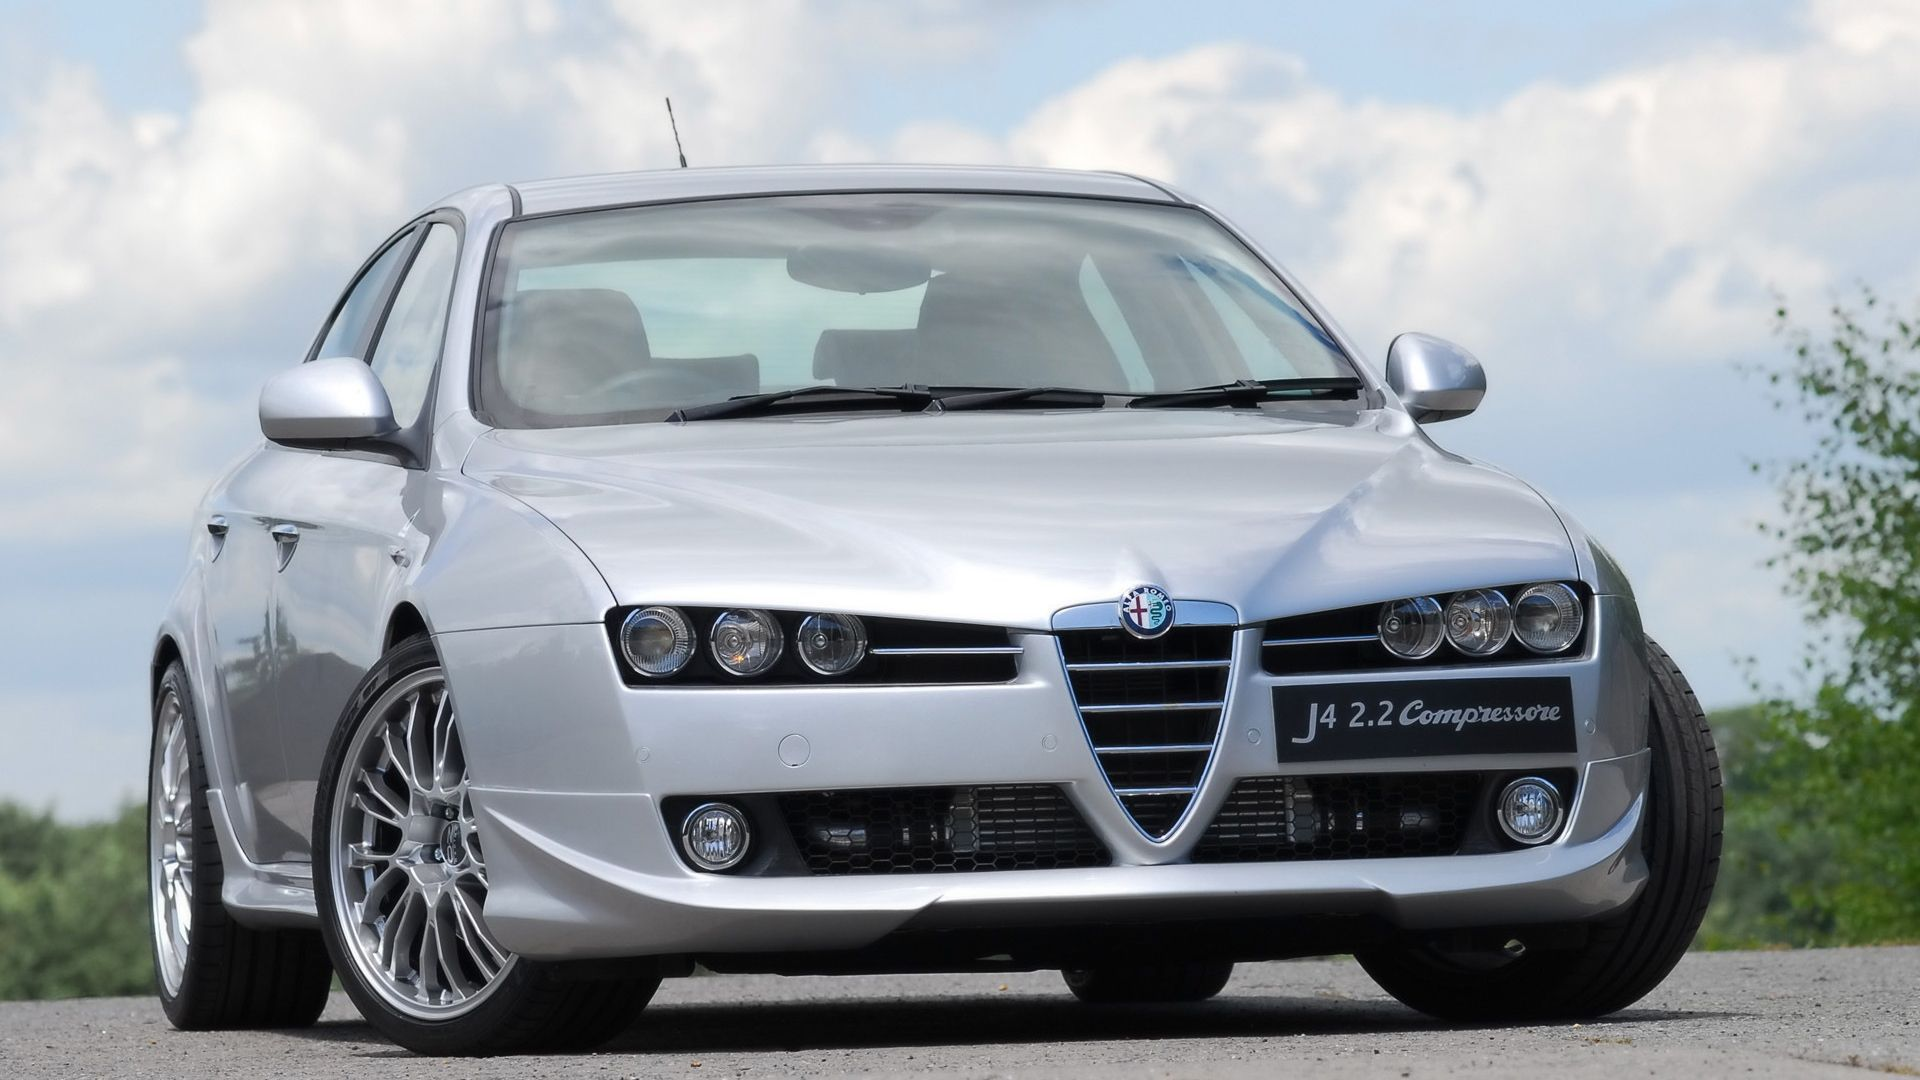 Alfa Romeo 159 Wallpapers